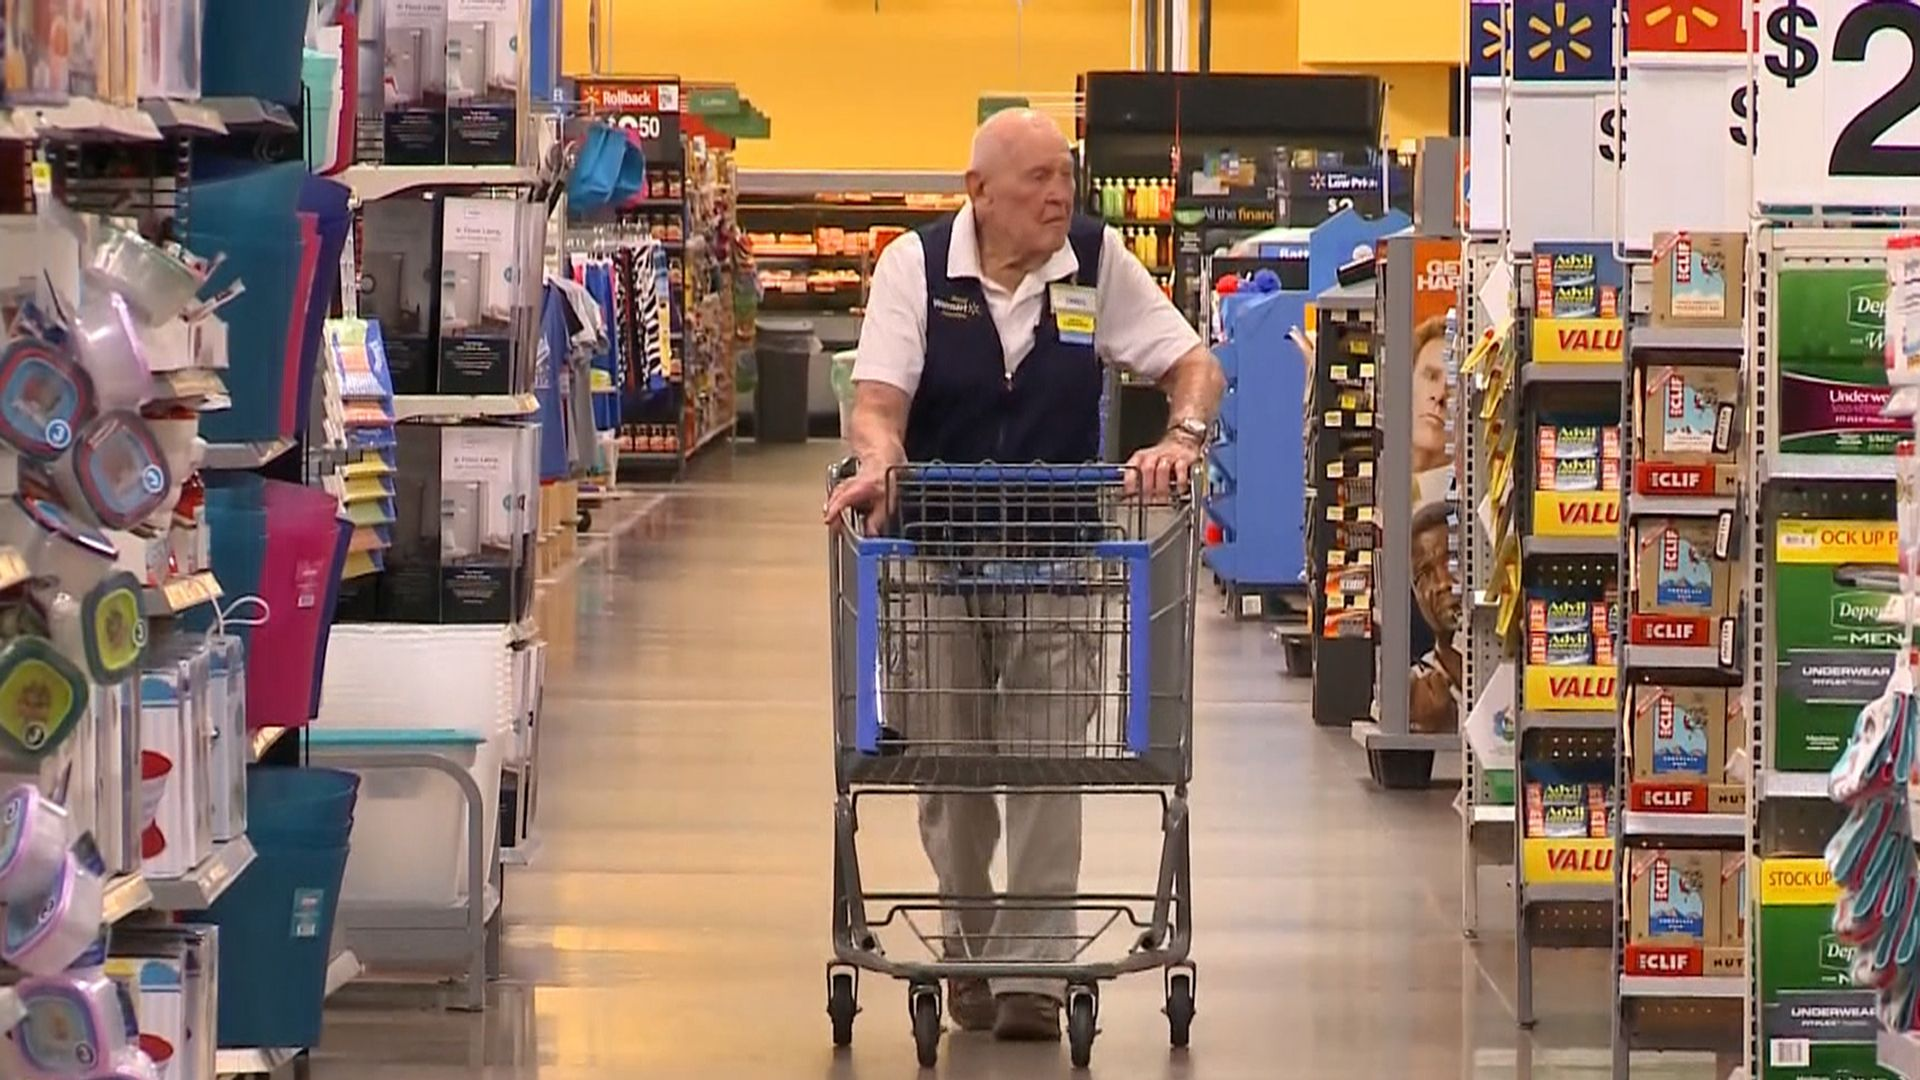 Wal-Mart's oldest employee celebrates 103rd birthday with special party